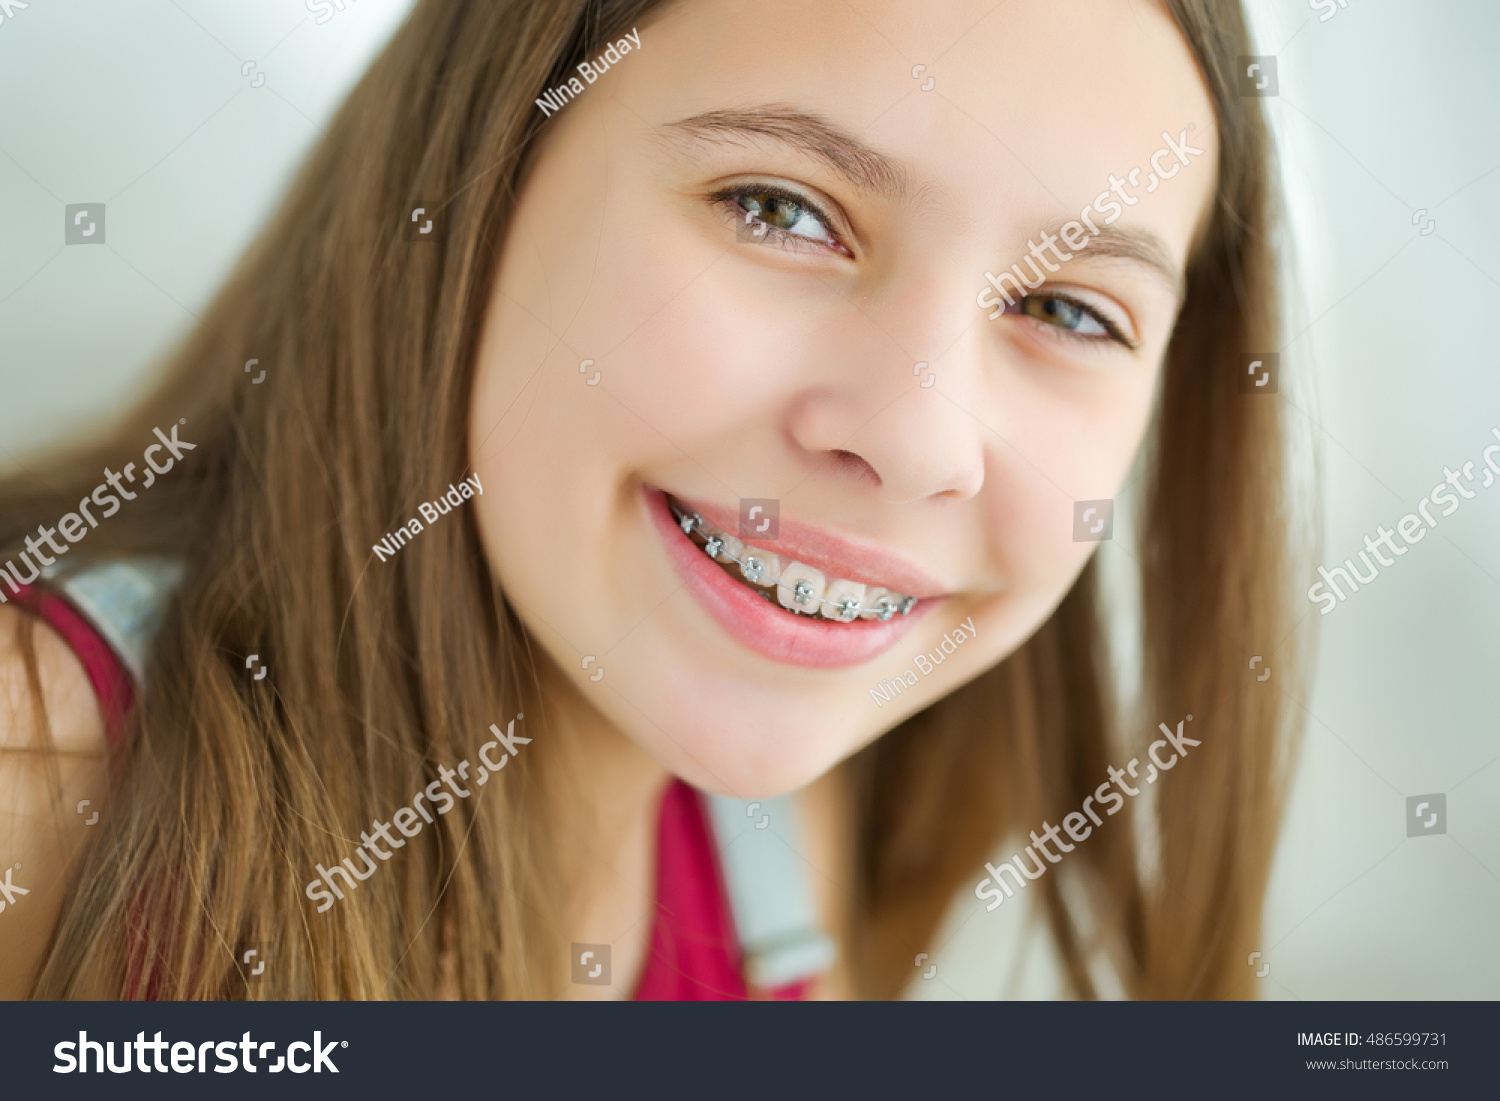 portrait cute kid dental braces smiling stock photo (royalty free